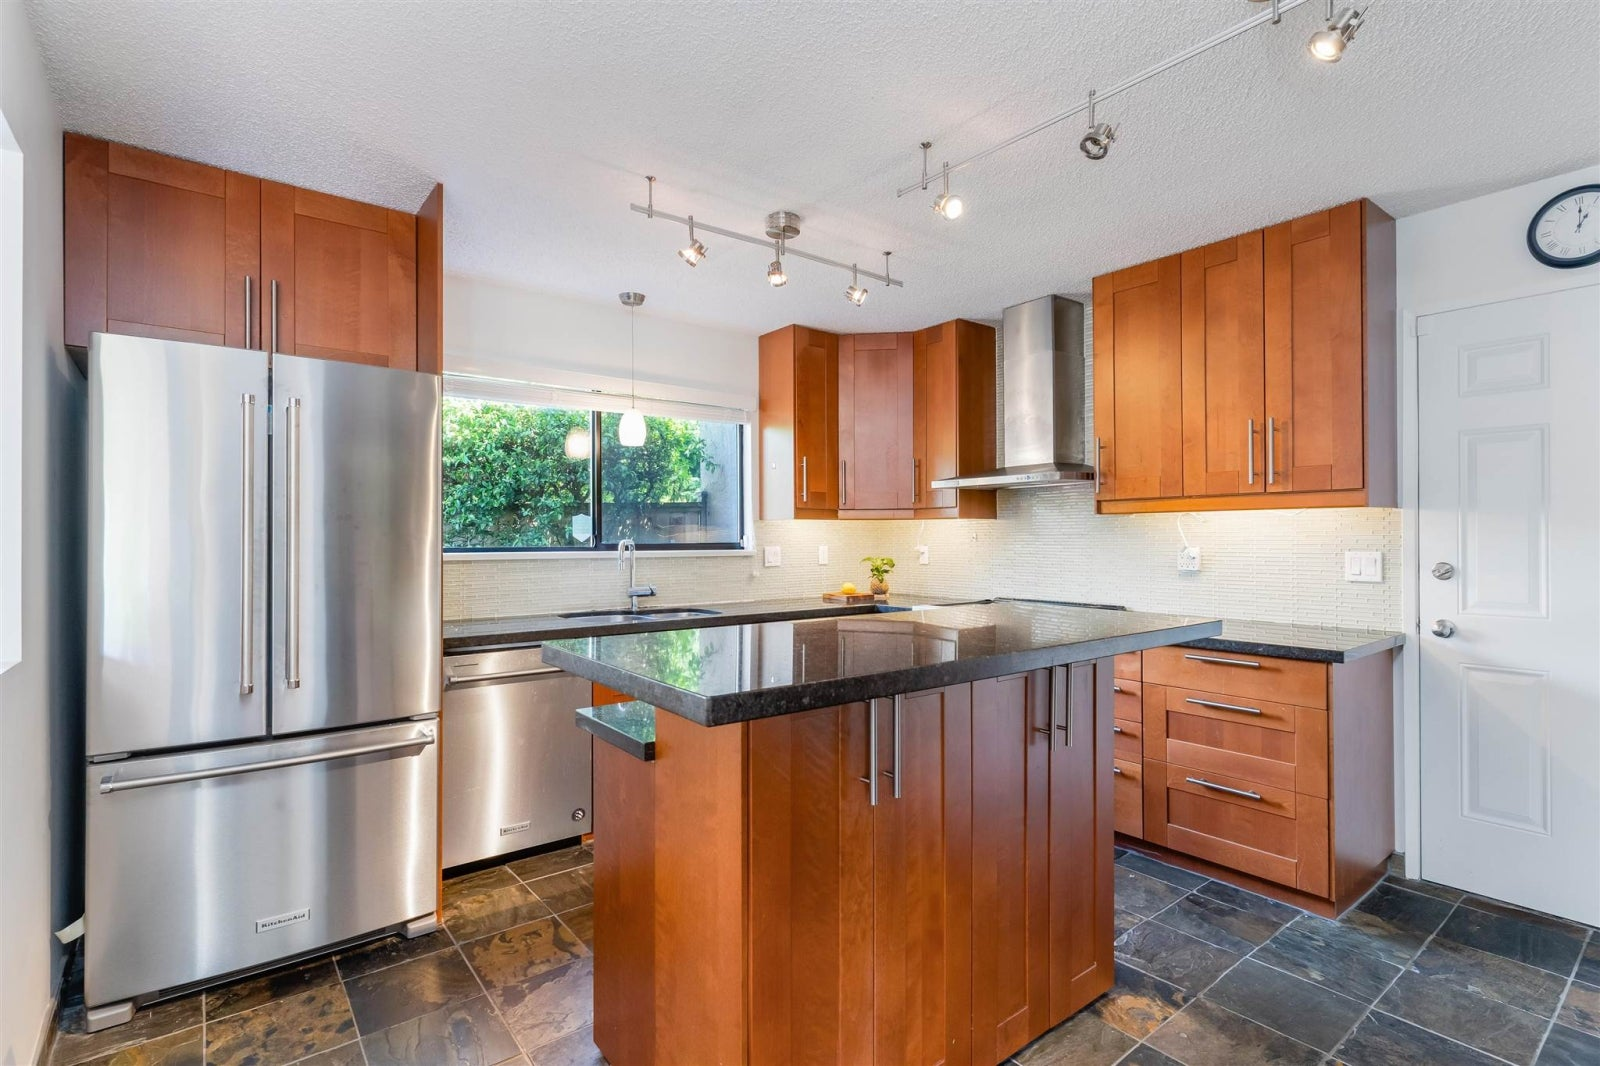 4 226 E 10TH STREET - Central Lonsdale Townhouse for sale, 3 Bedrooms (R2596161) #12